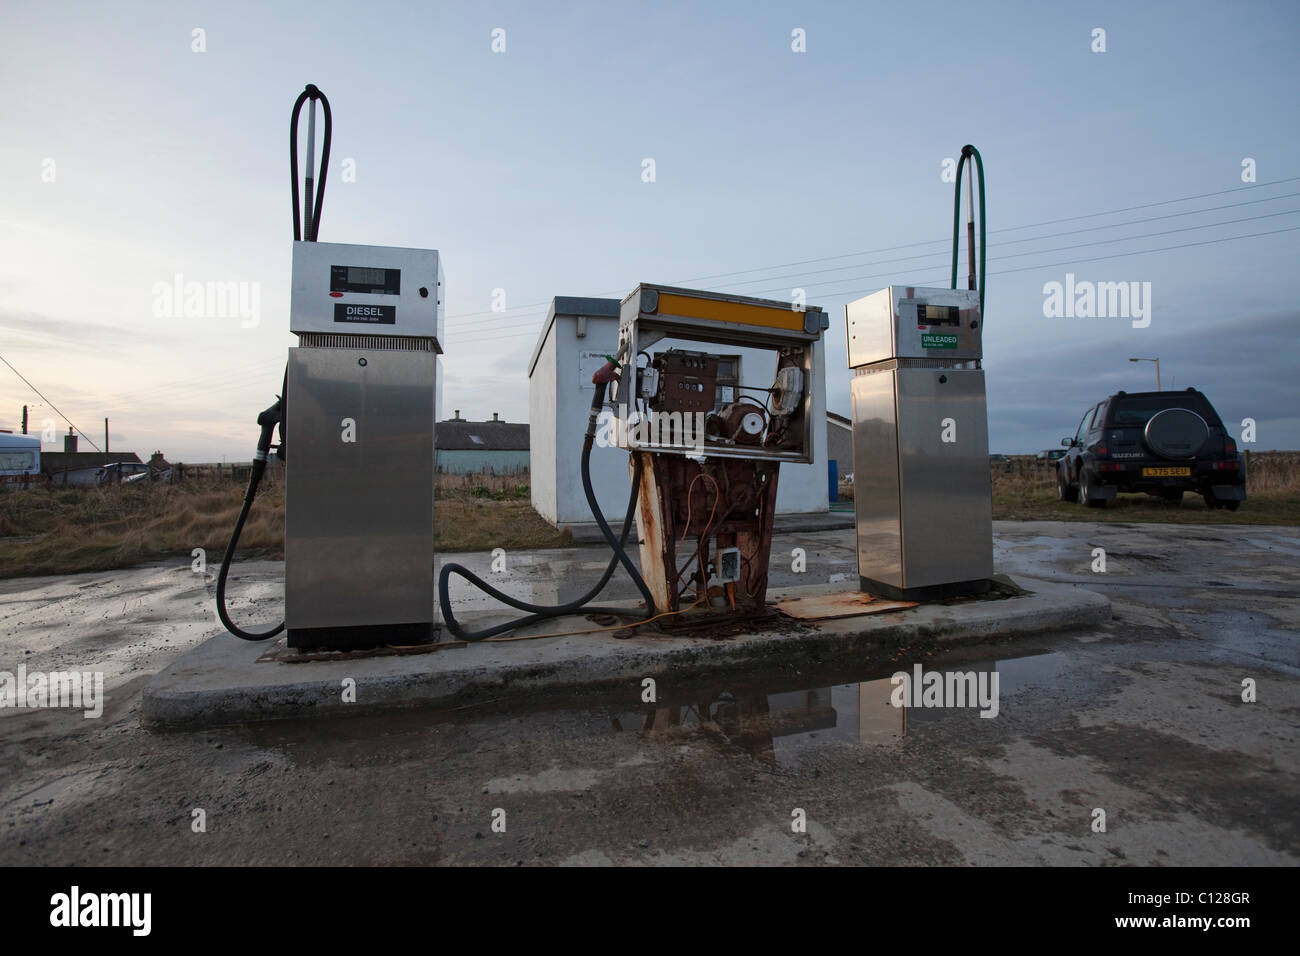 Island petrol station selling diesel and unleaded petrol at £1.50 per litre on the island of Sanday, Orkney - Stock Image